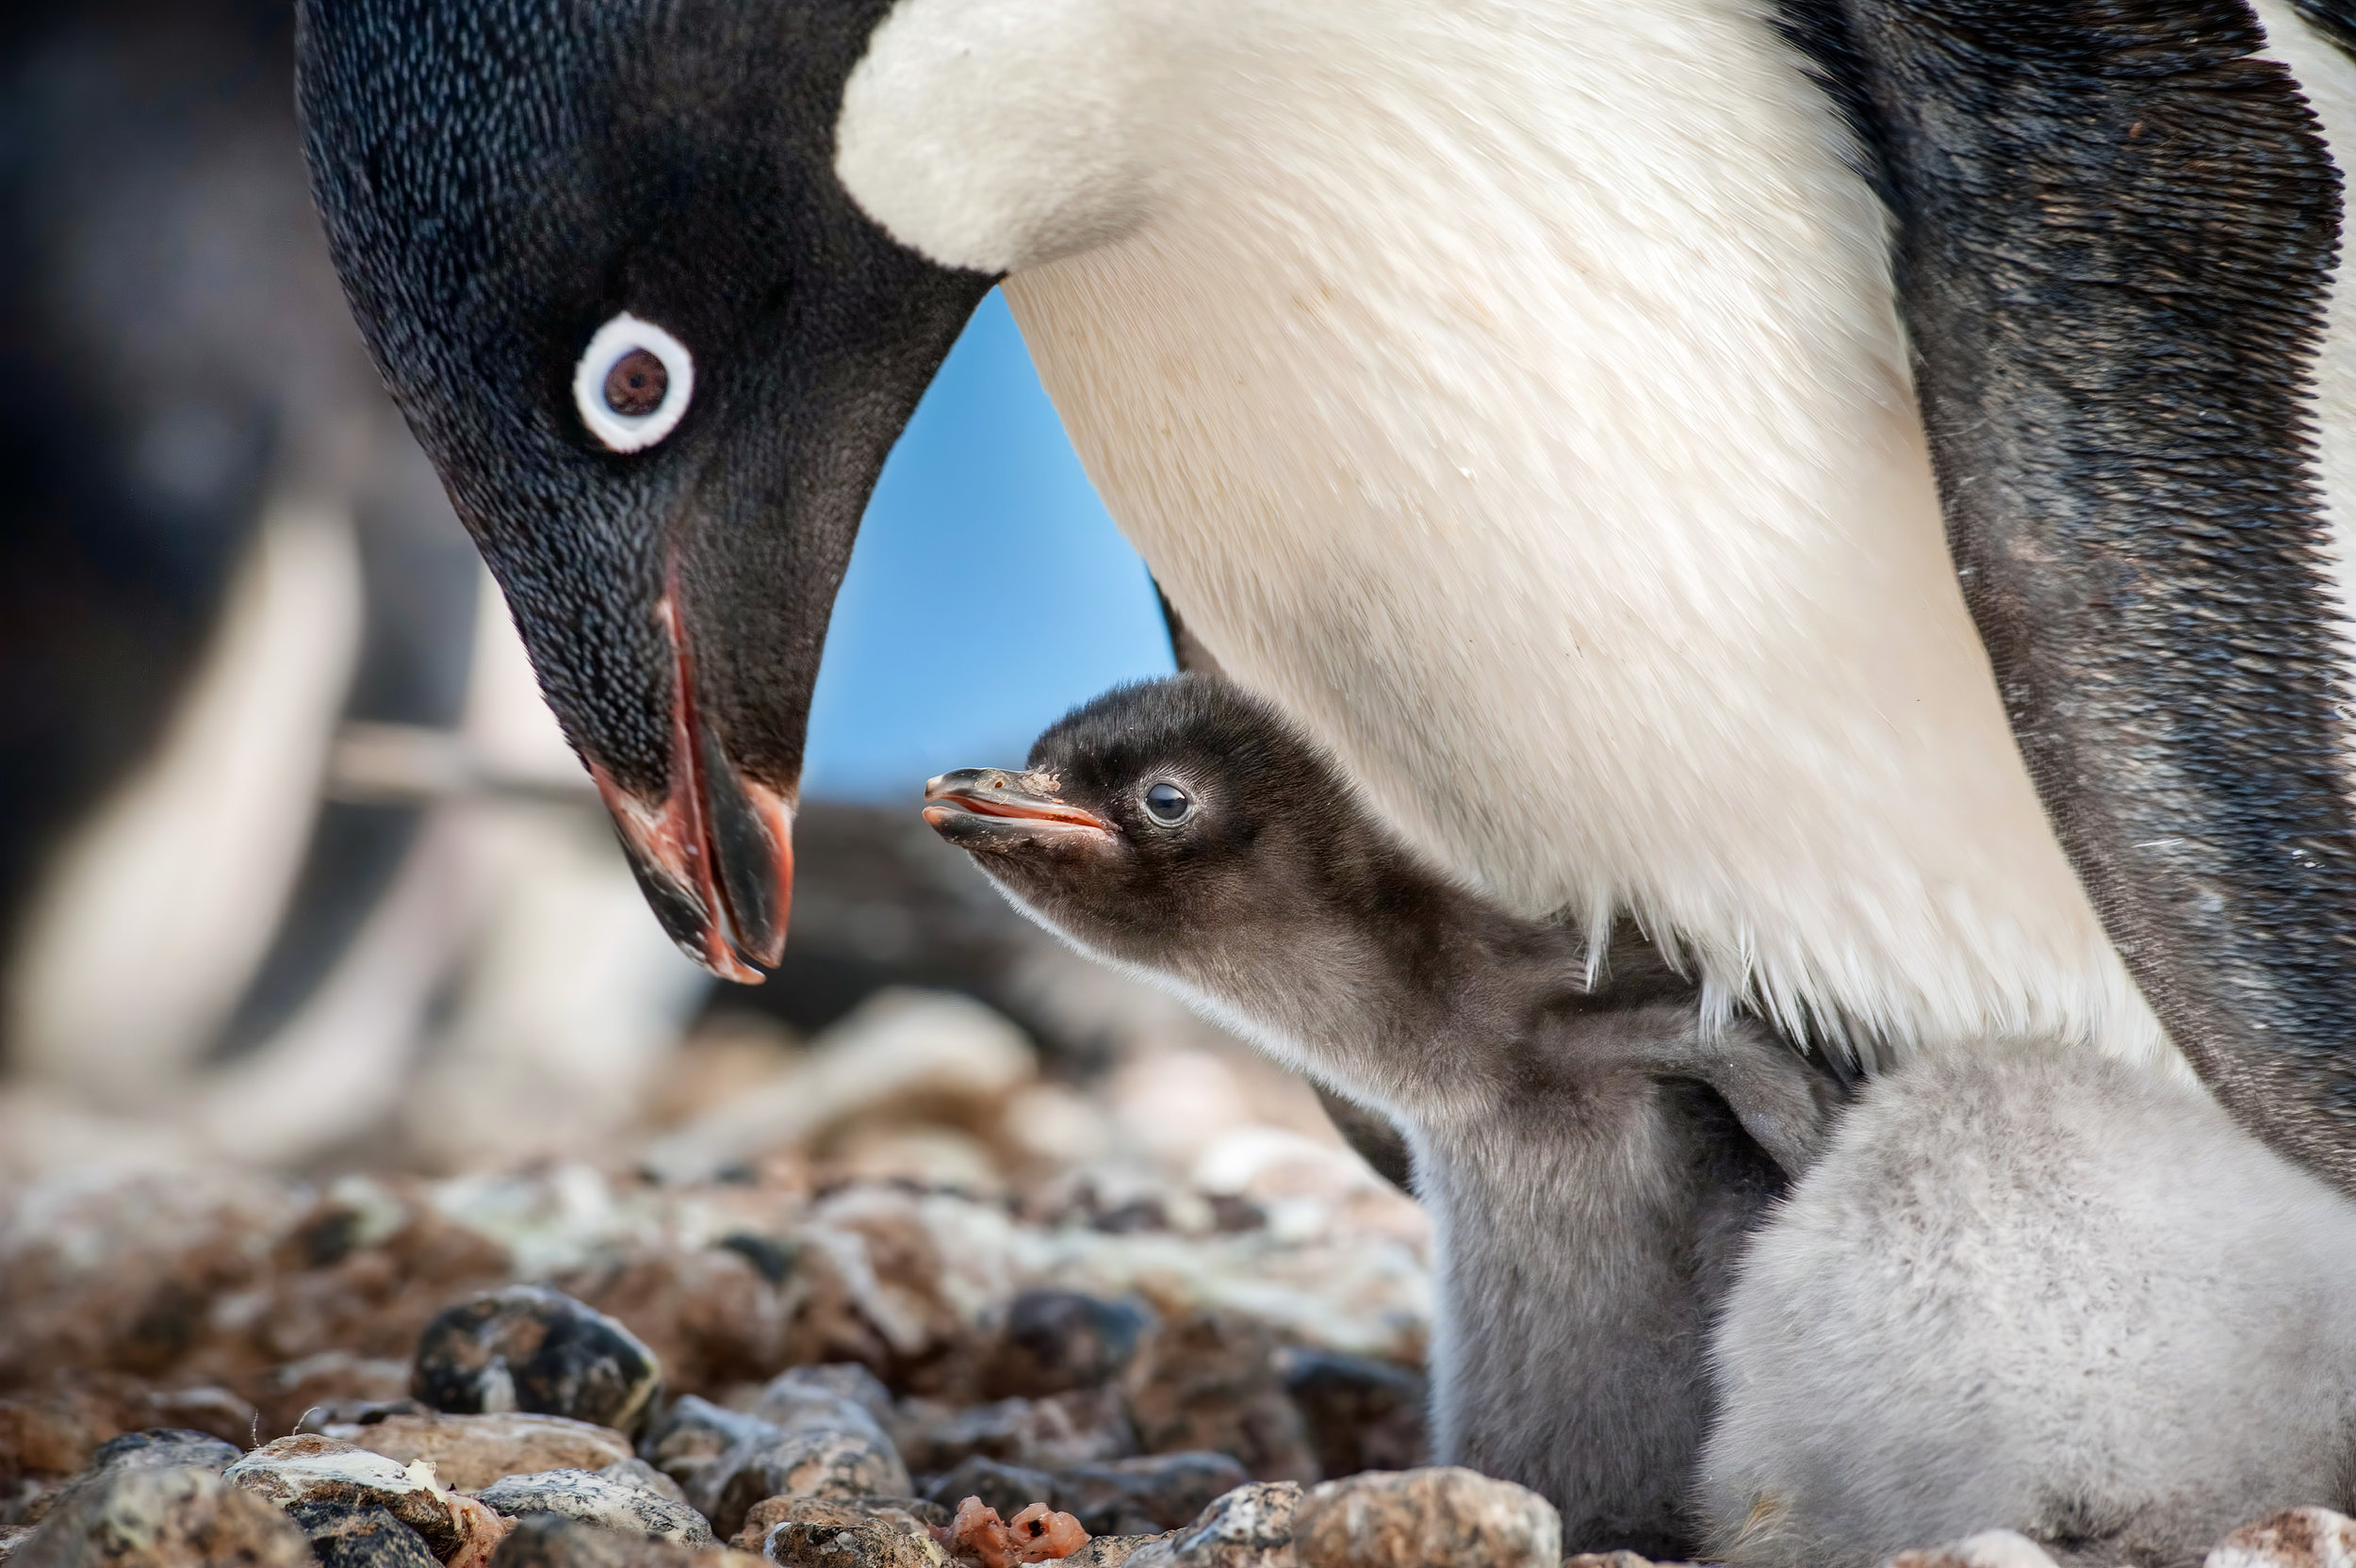 """An Adélie penguin keeps its chick warm in a colony of the flightless birds in Antarctica, in a moment from the DisneyNature documentary """"Penguins."""" (Photo courtesy DisneyNature / Walt Disney Pictures.)"""